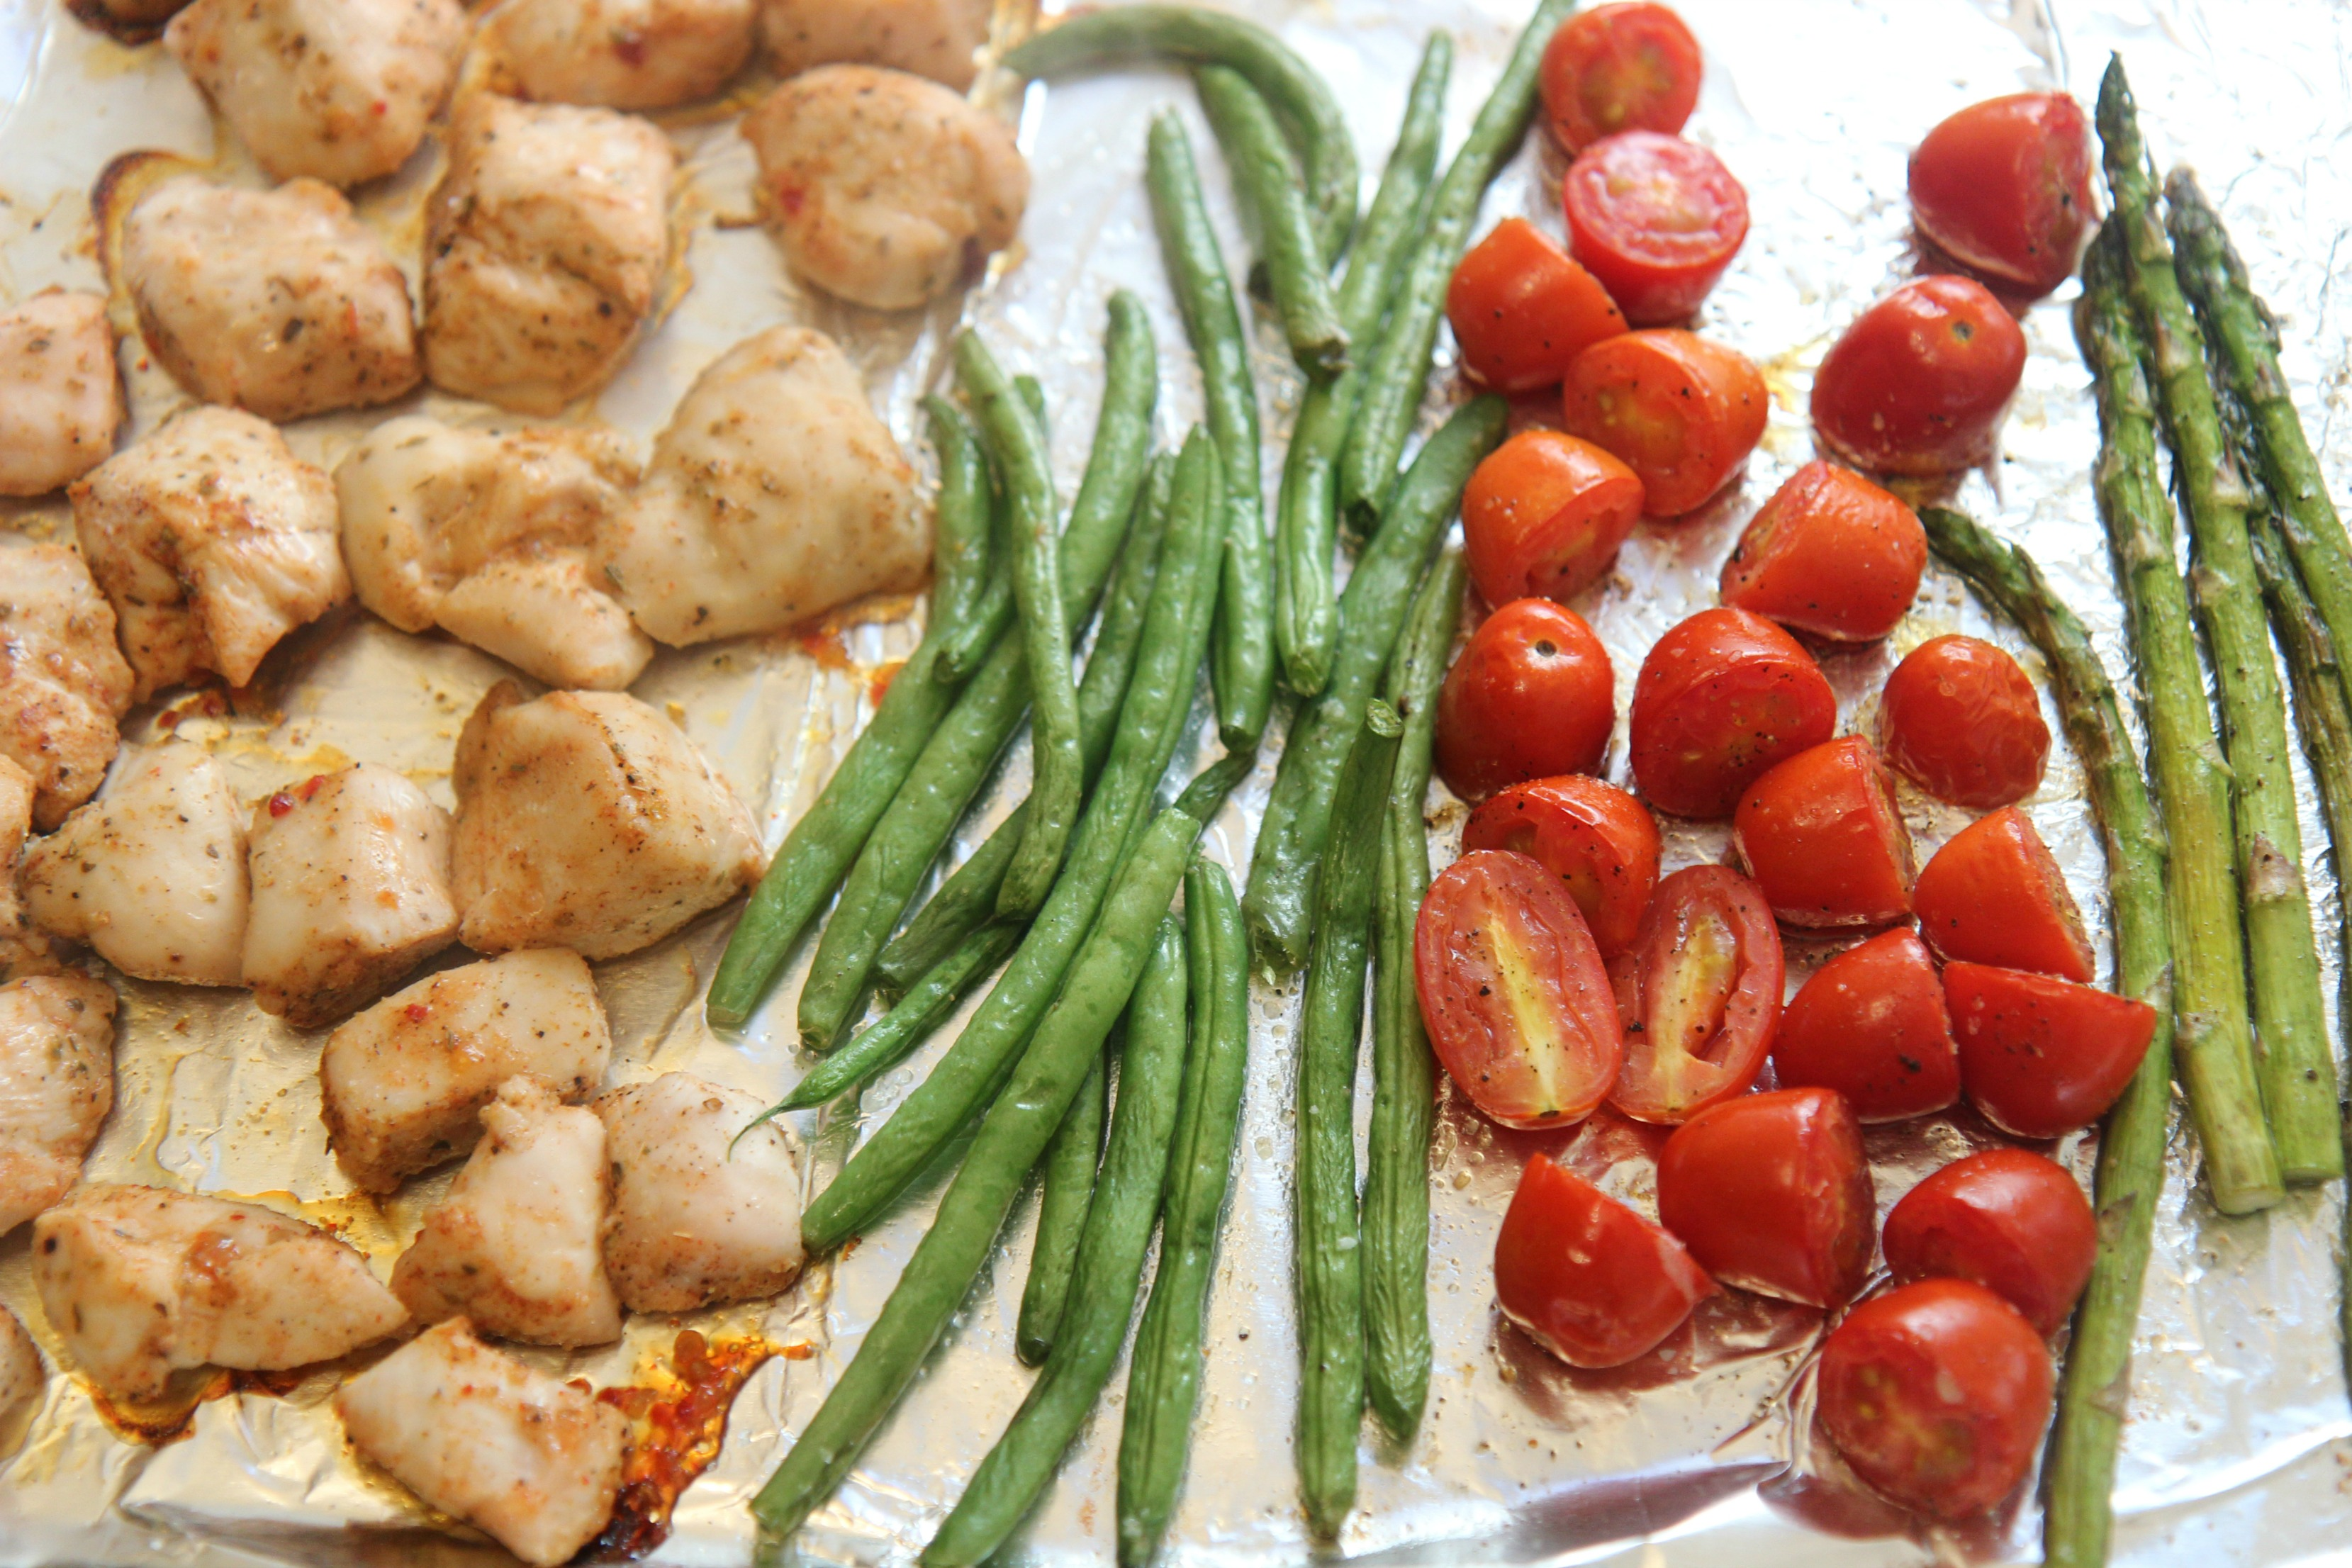 One Pan Chicken and Veggies - Seasoned chicken with green beans, asparagus, and cherry tomatoes.